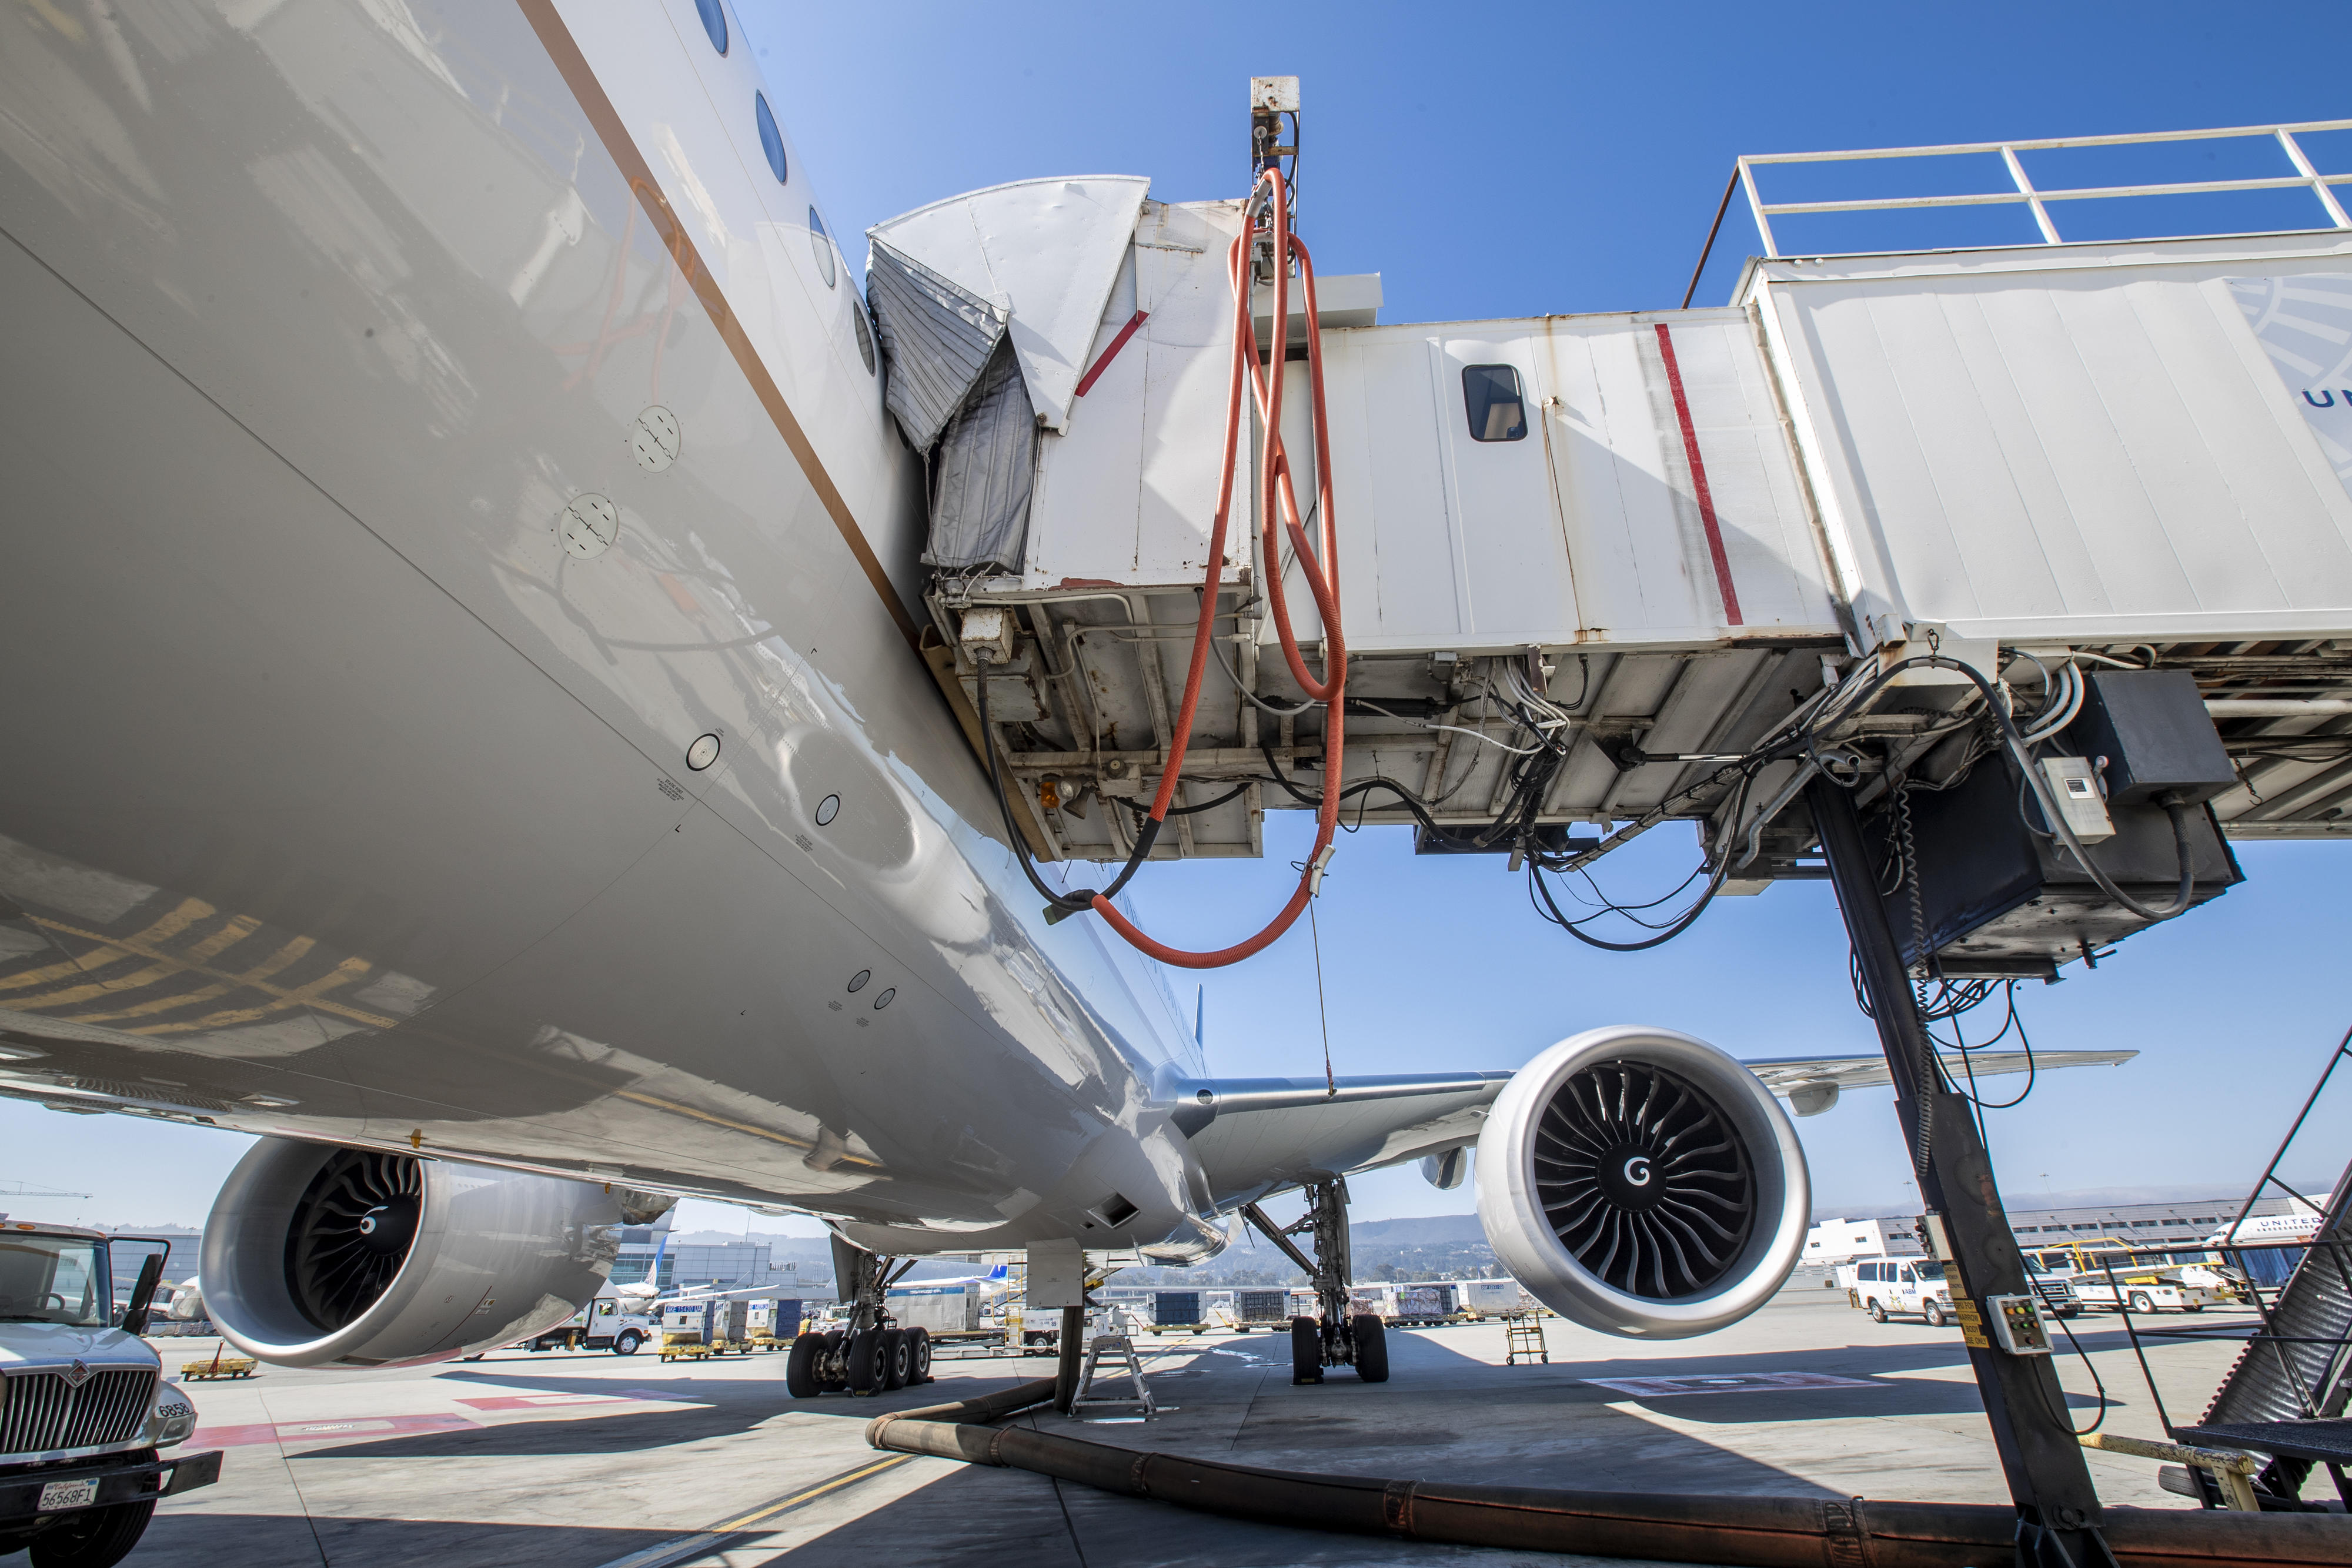 A jet bridge connects to an aircraft so passengers can disembark.